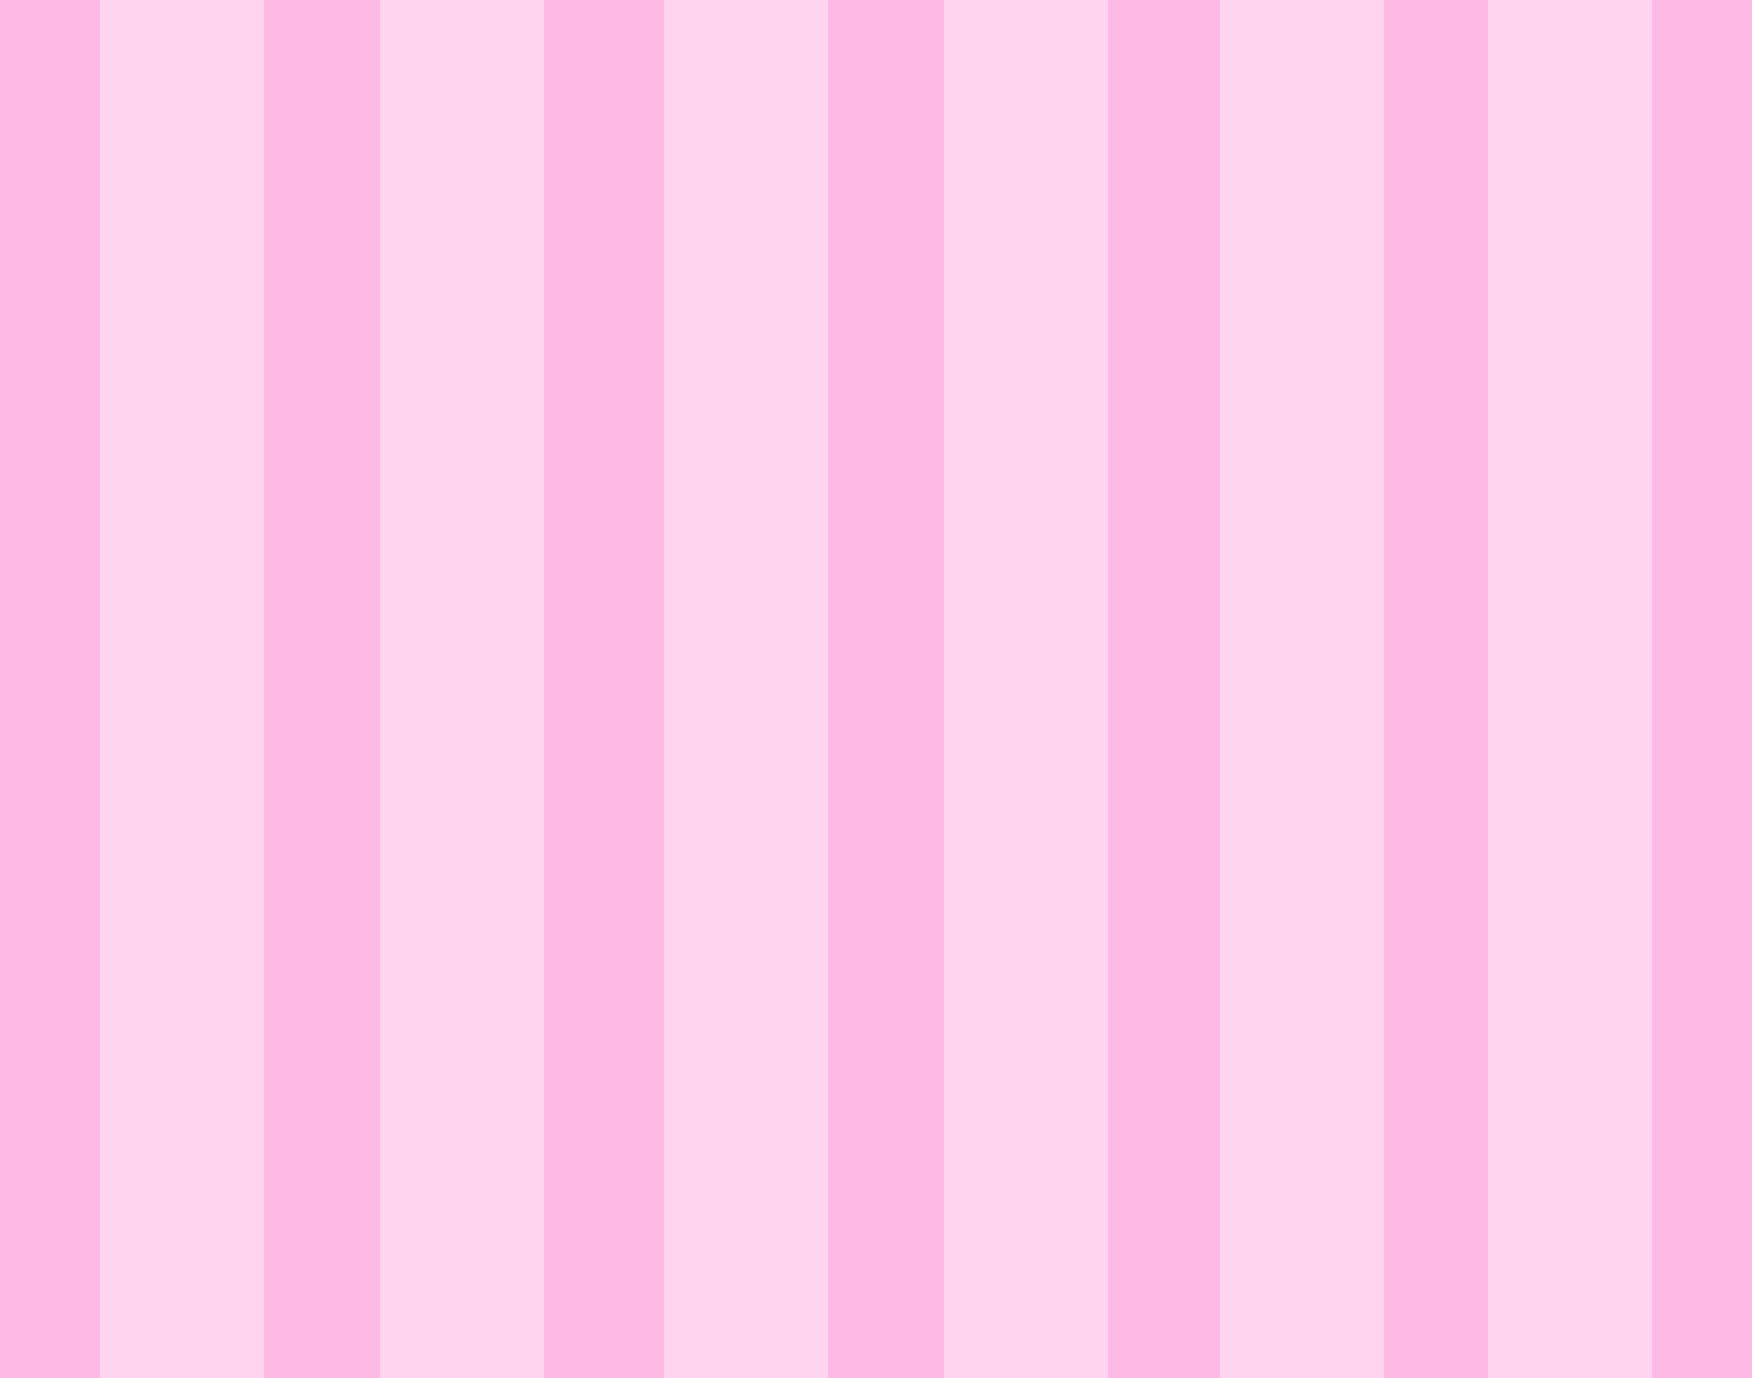 Cute Baby Barbie Hd Wallpaper Backgrounds Pink Wallpaper Cave